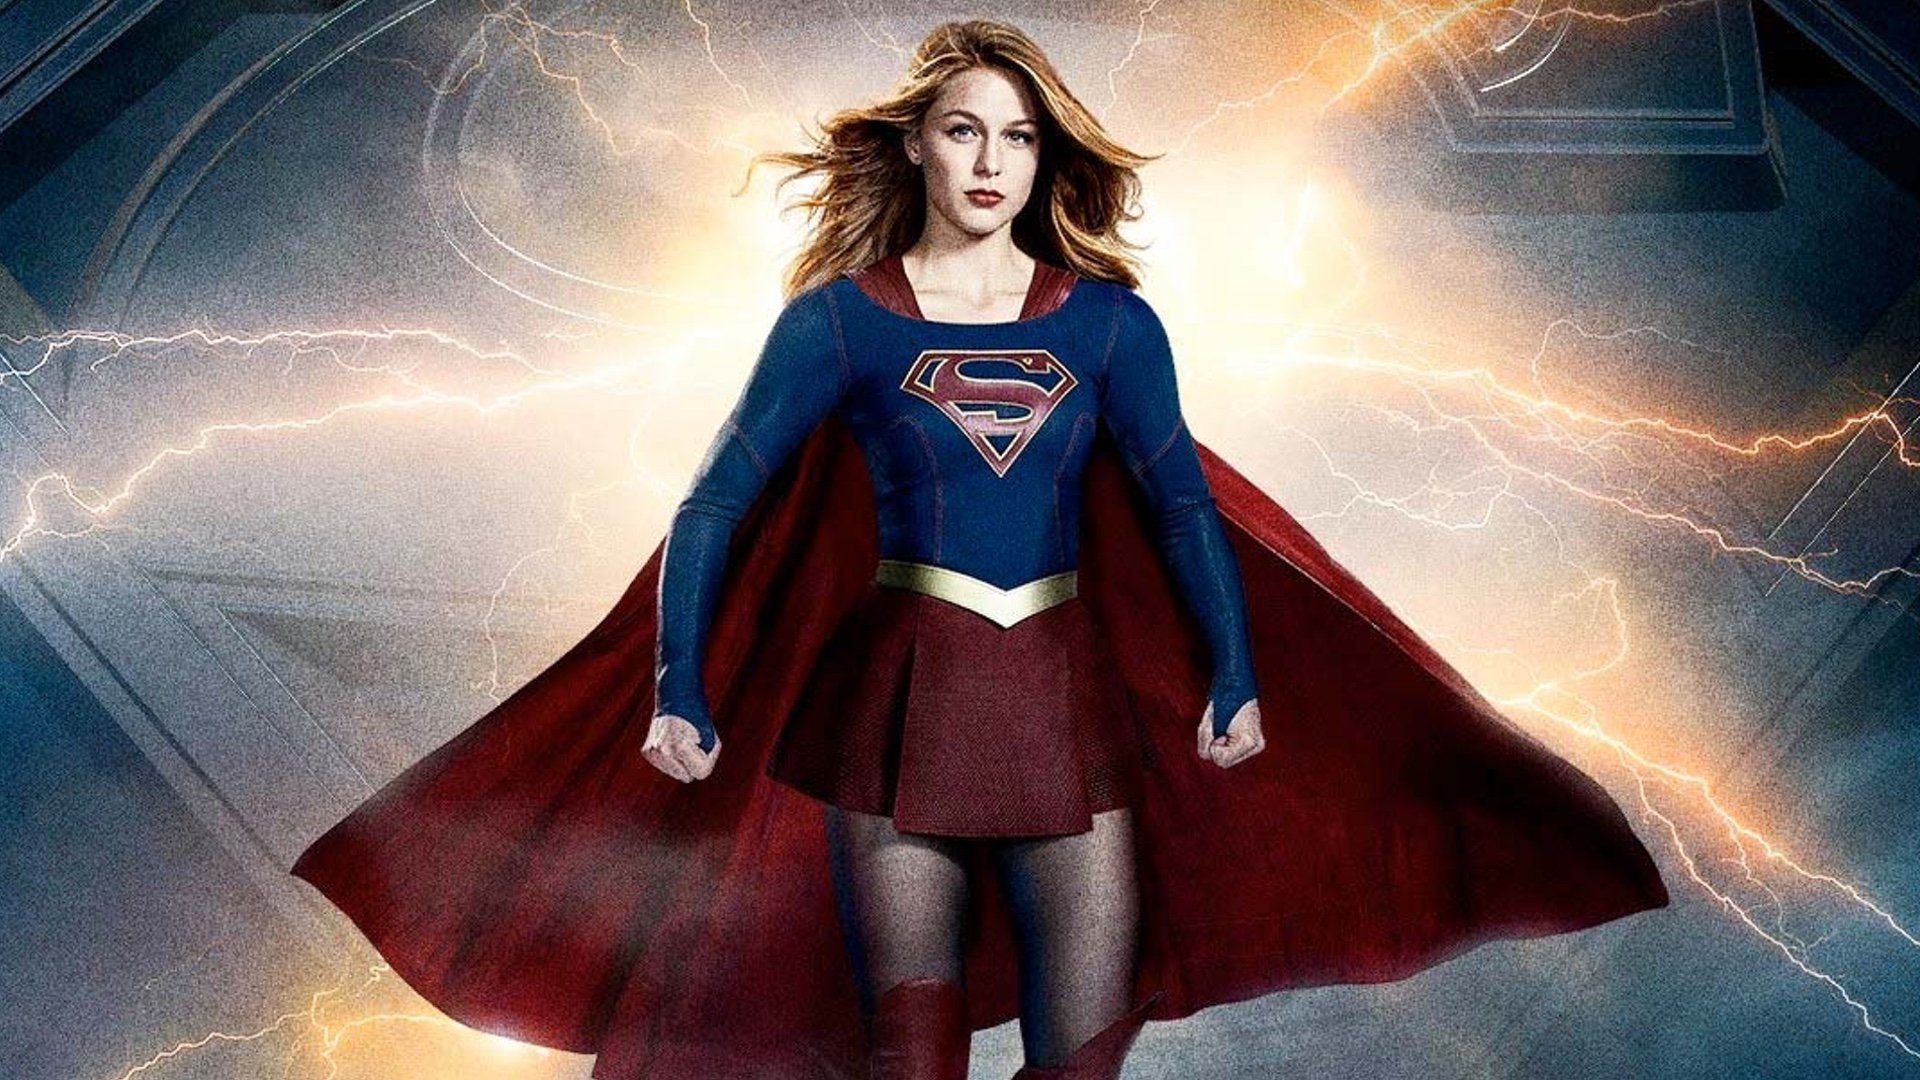 Supergirl Is Cancelled But Melissa Benoist Will Keep Playing Supergirl In This